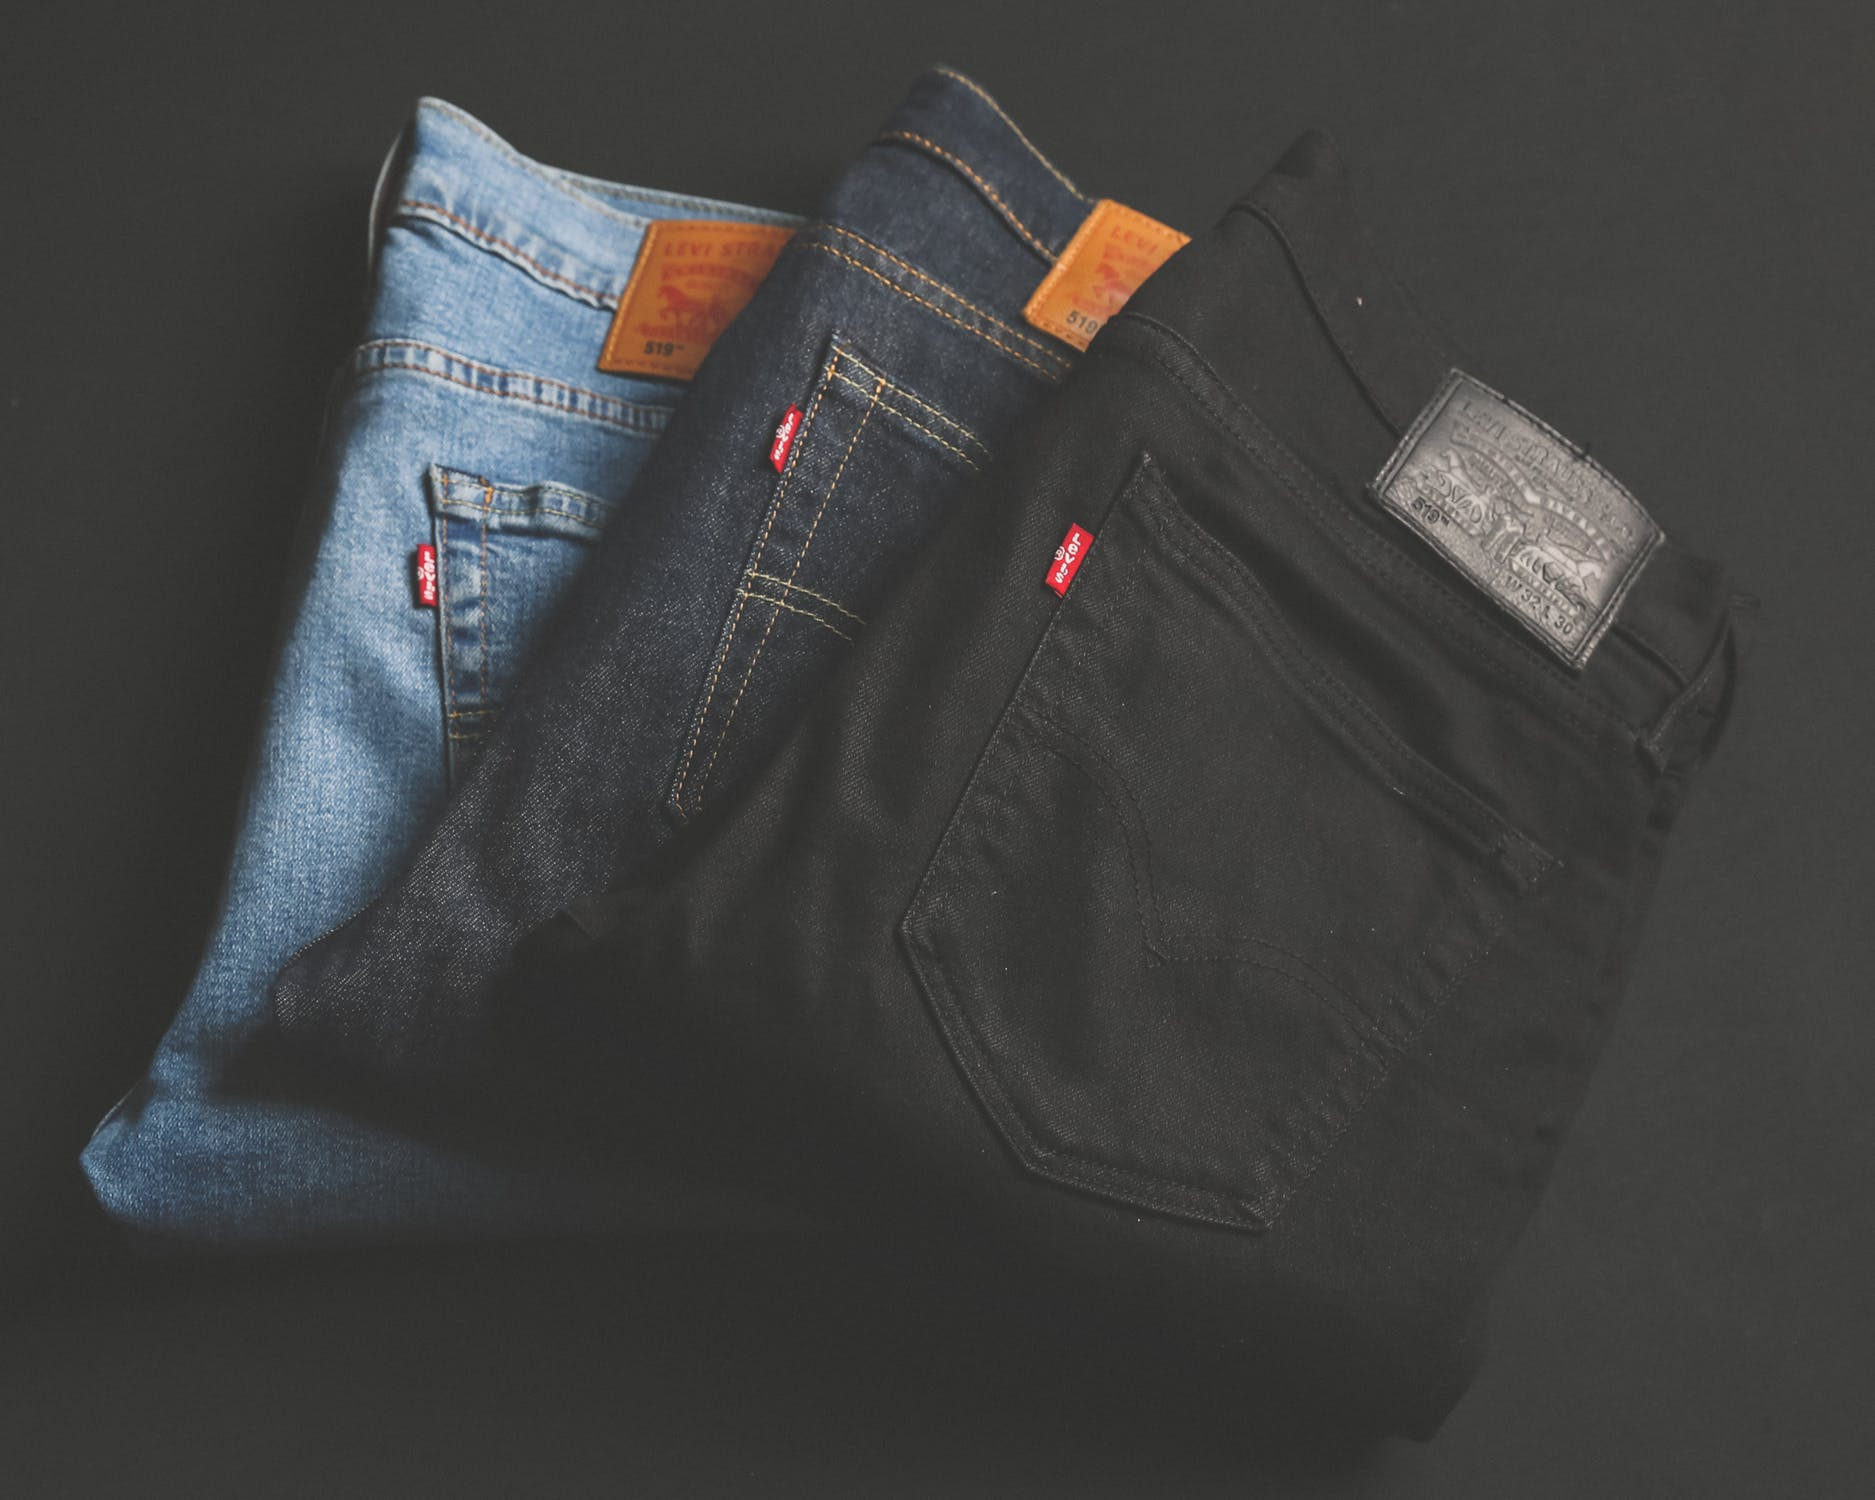 """""""Come look at my jeans."""" Neatly folded, but not into thirds. Tut Tut. Back to folding school for you. Image Source - Pexels.com"""